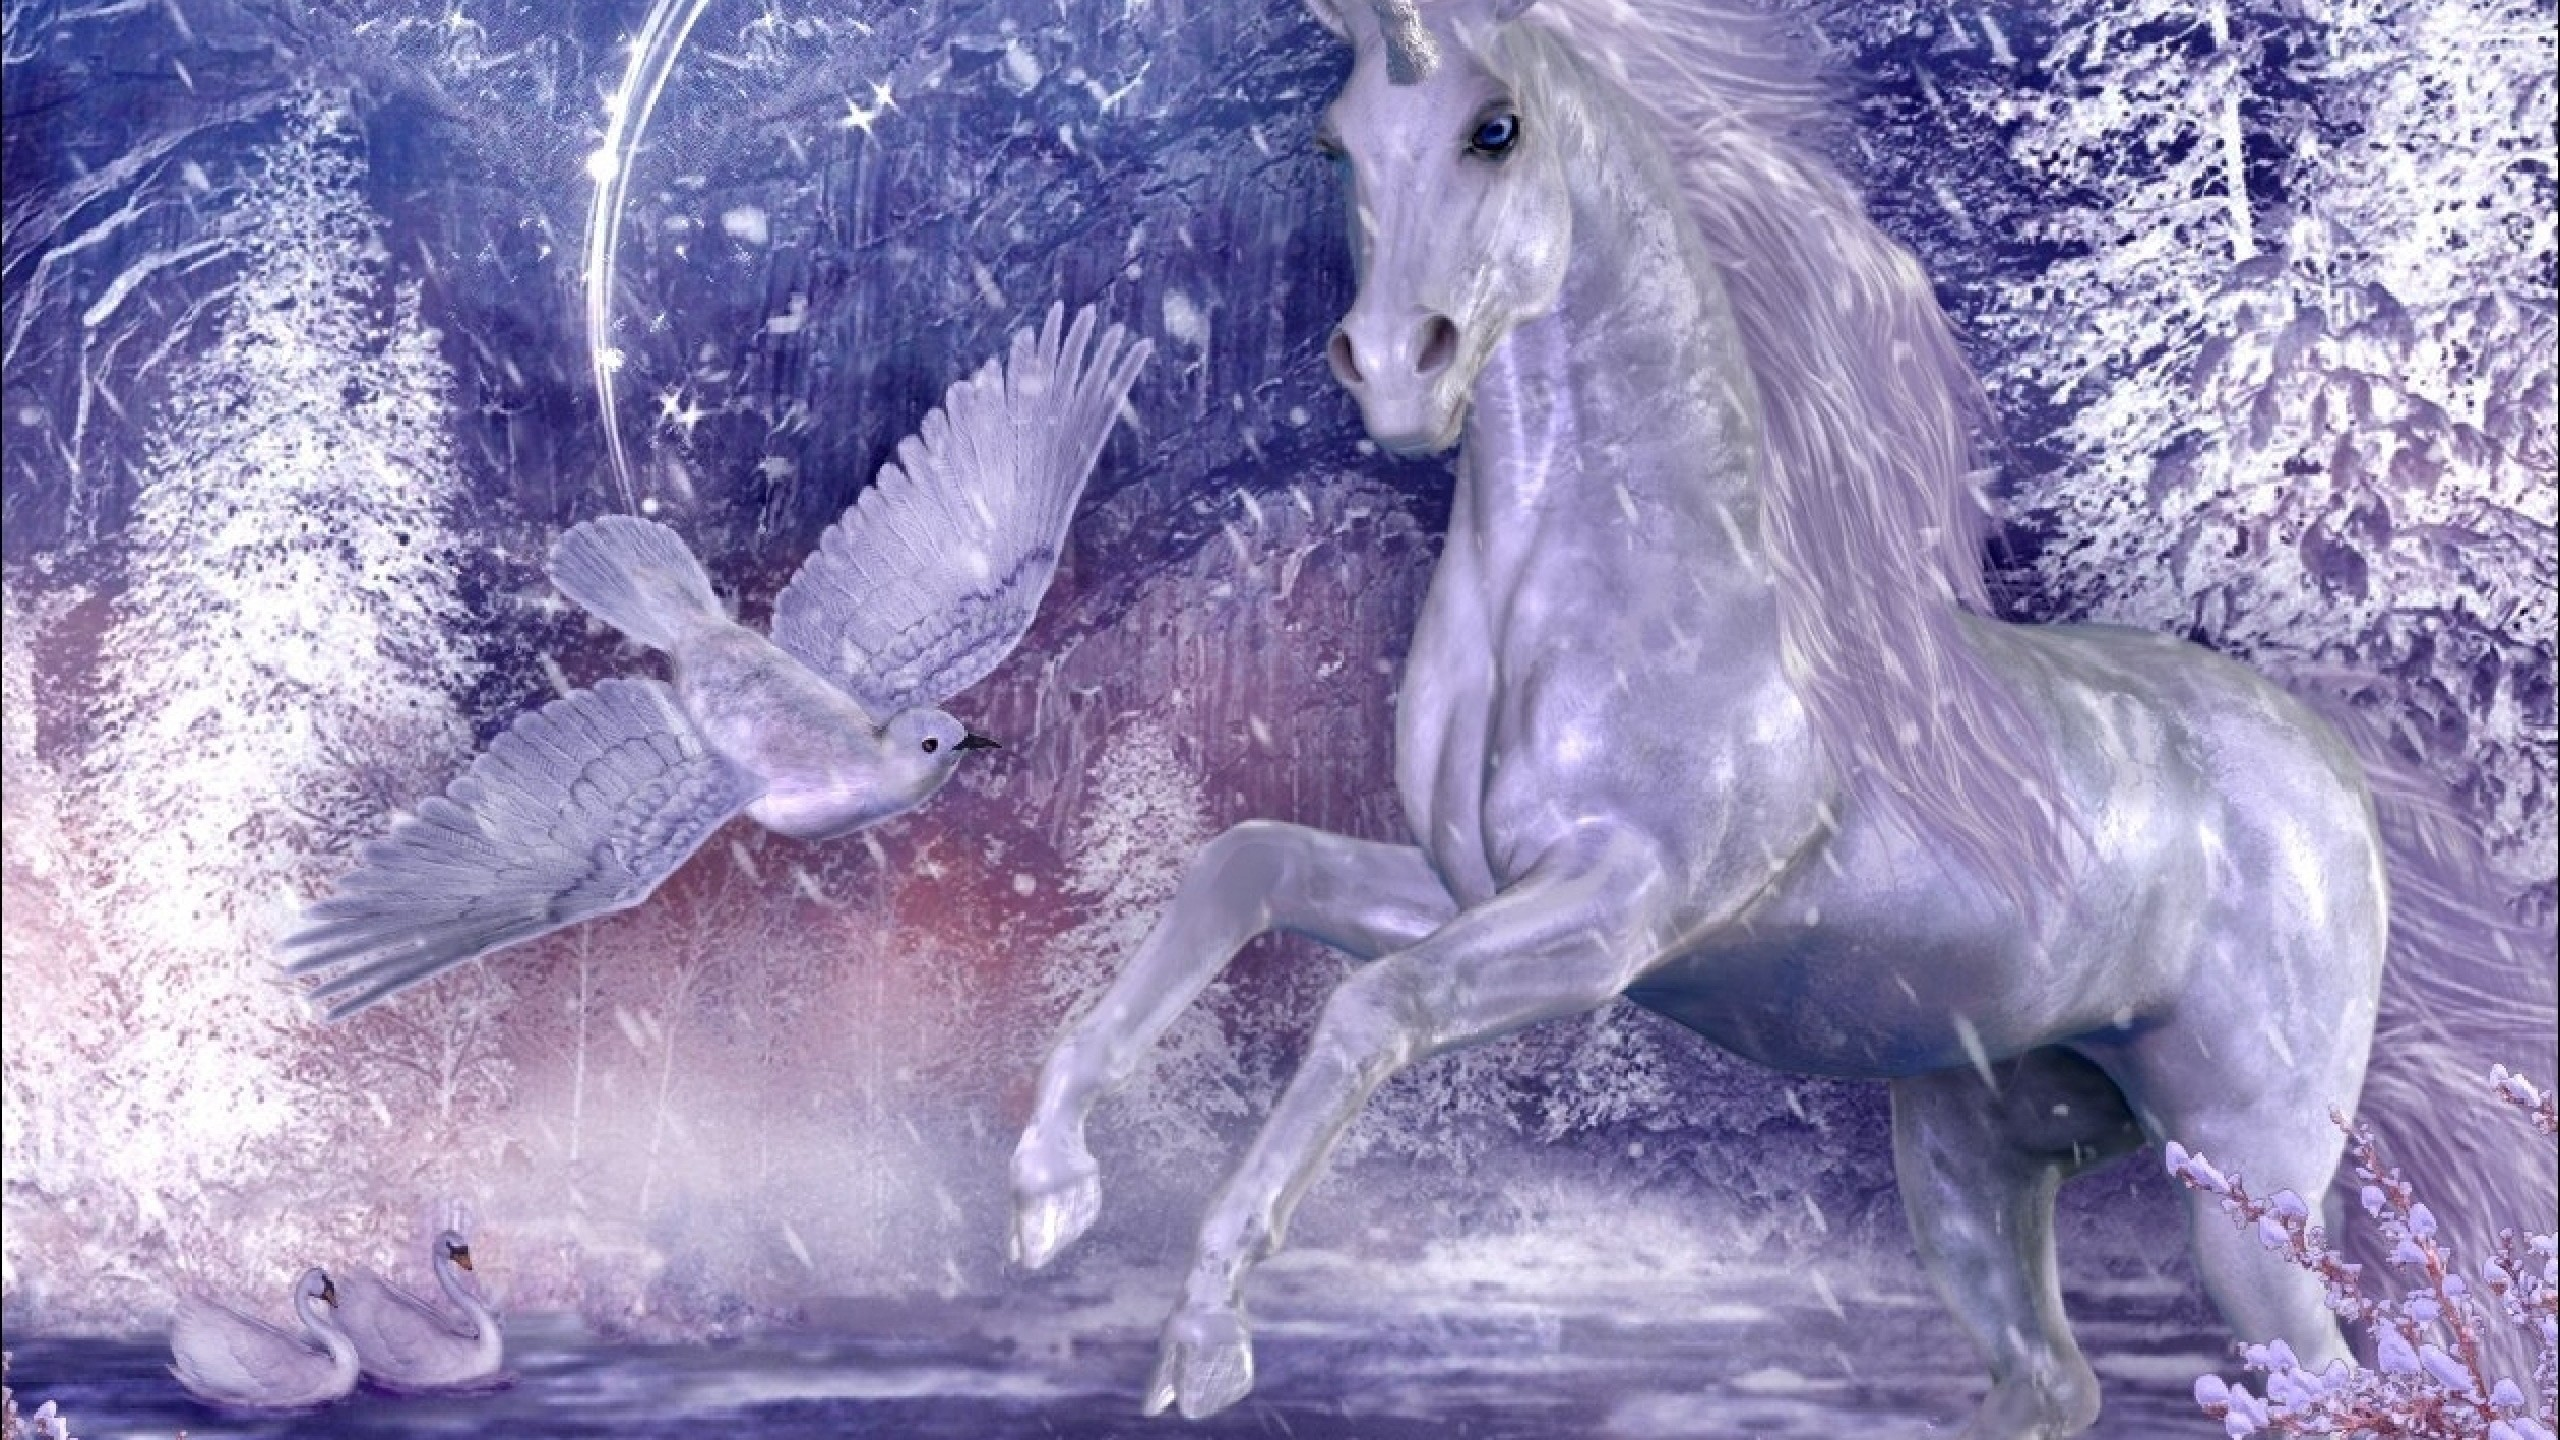 HD Unicorn Wallpaper and Desktop Background Back Wallpapers